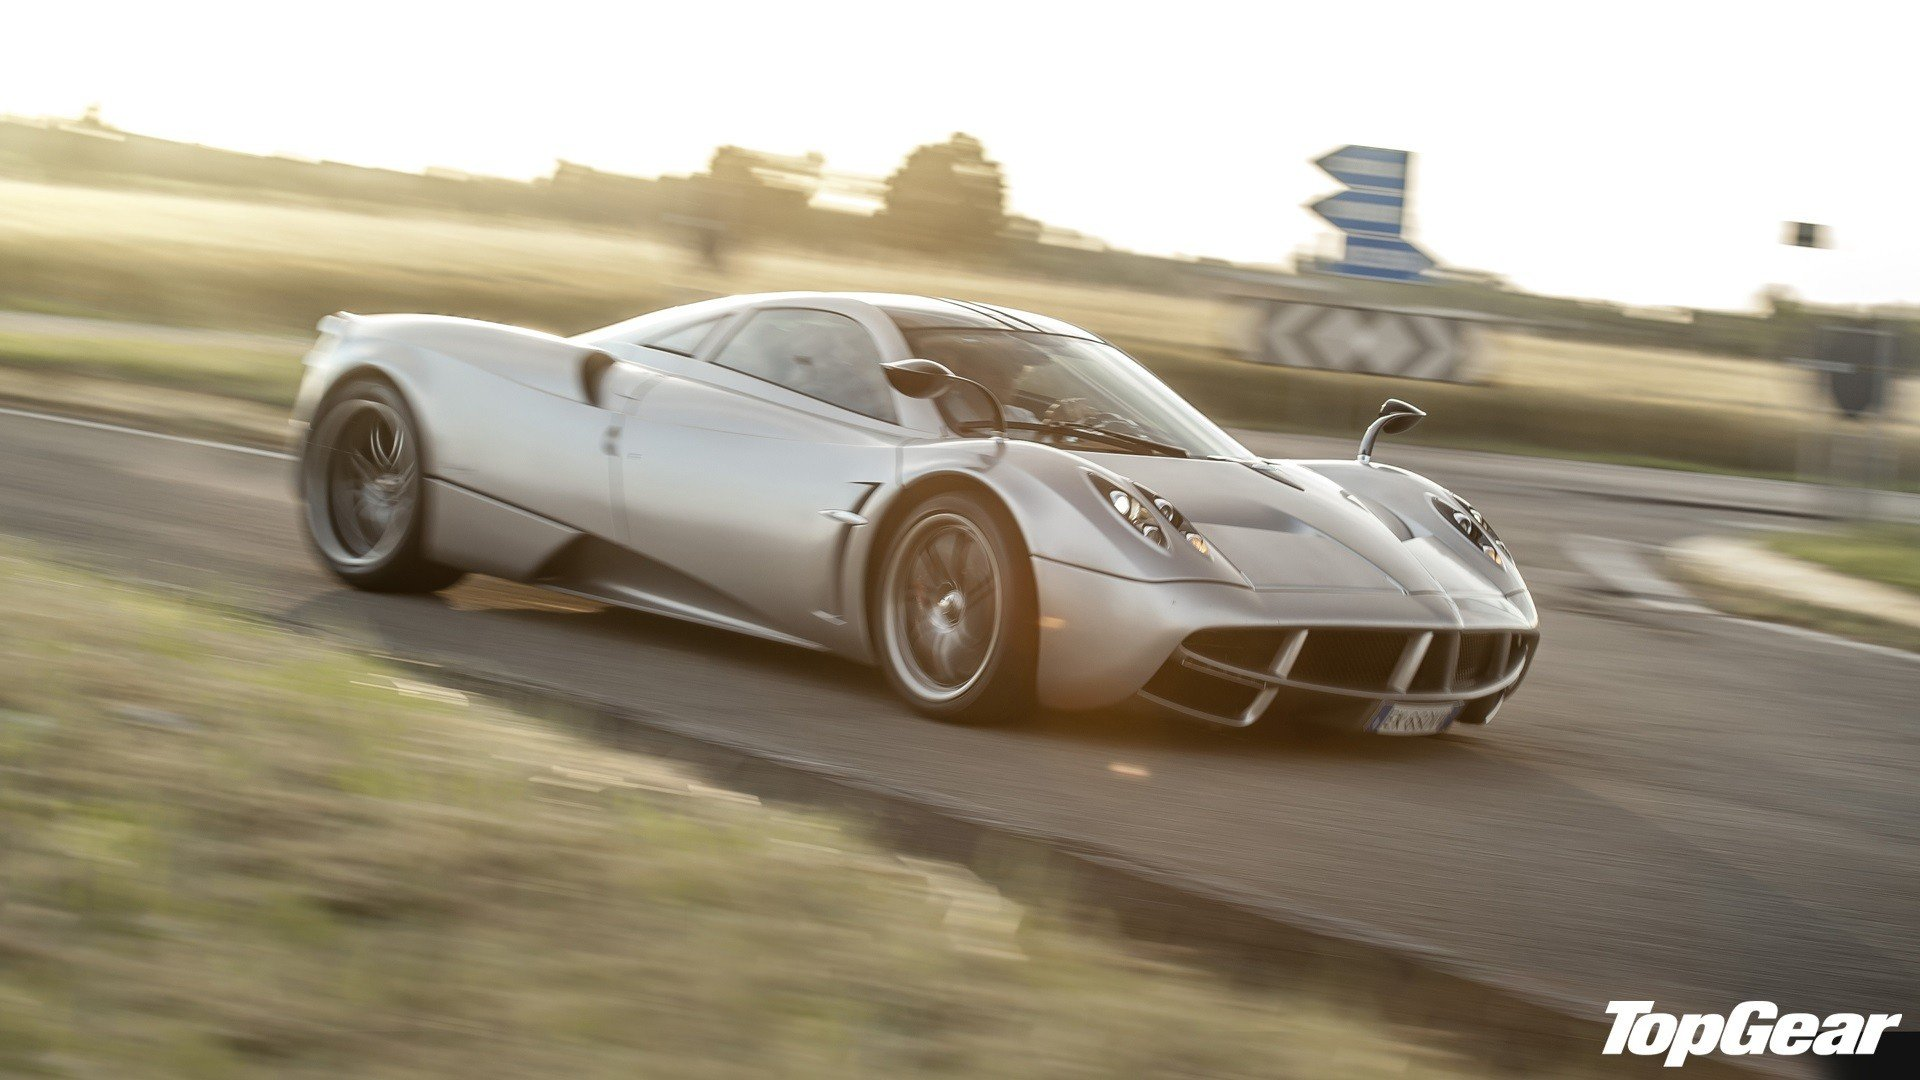 Awesome Pagani Huayra Free Background ID:160208 For Full Hd 1920x1080  Computer